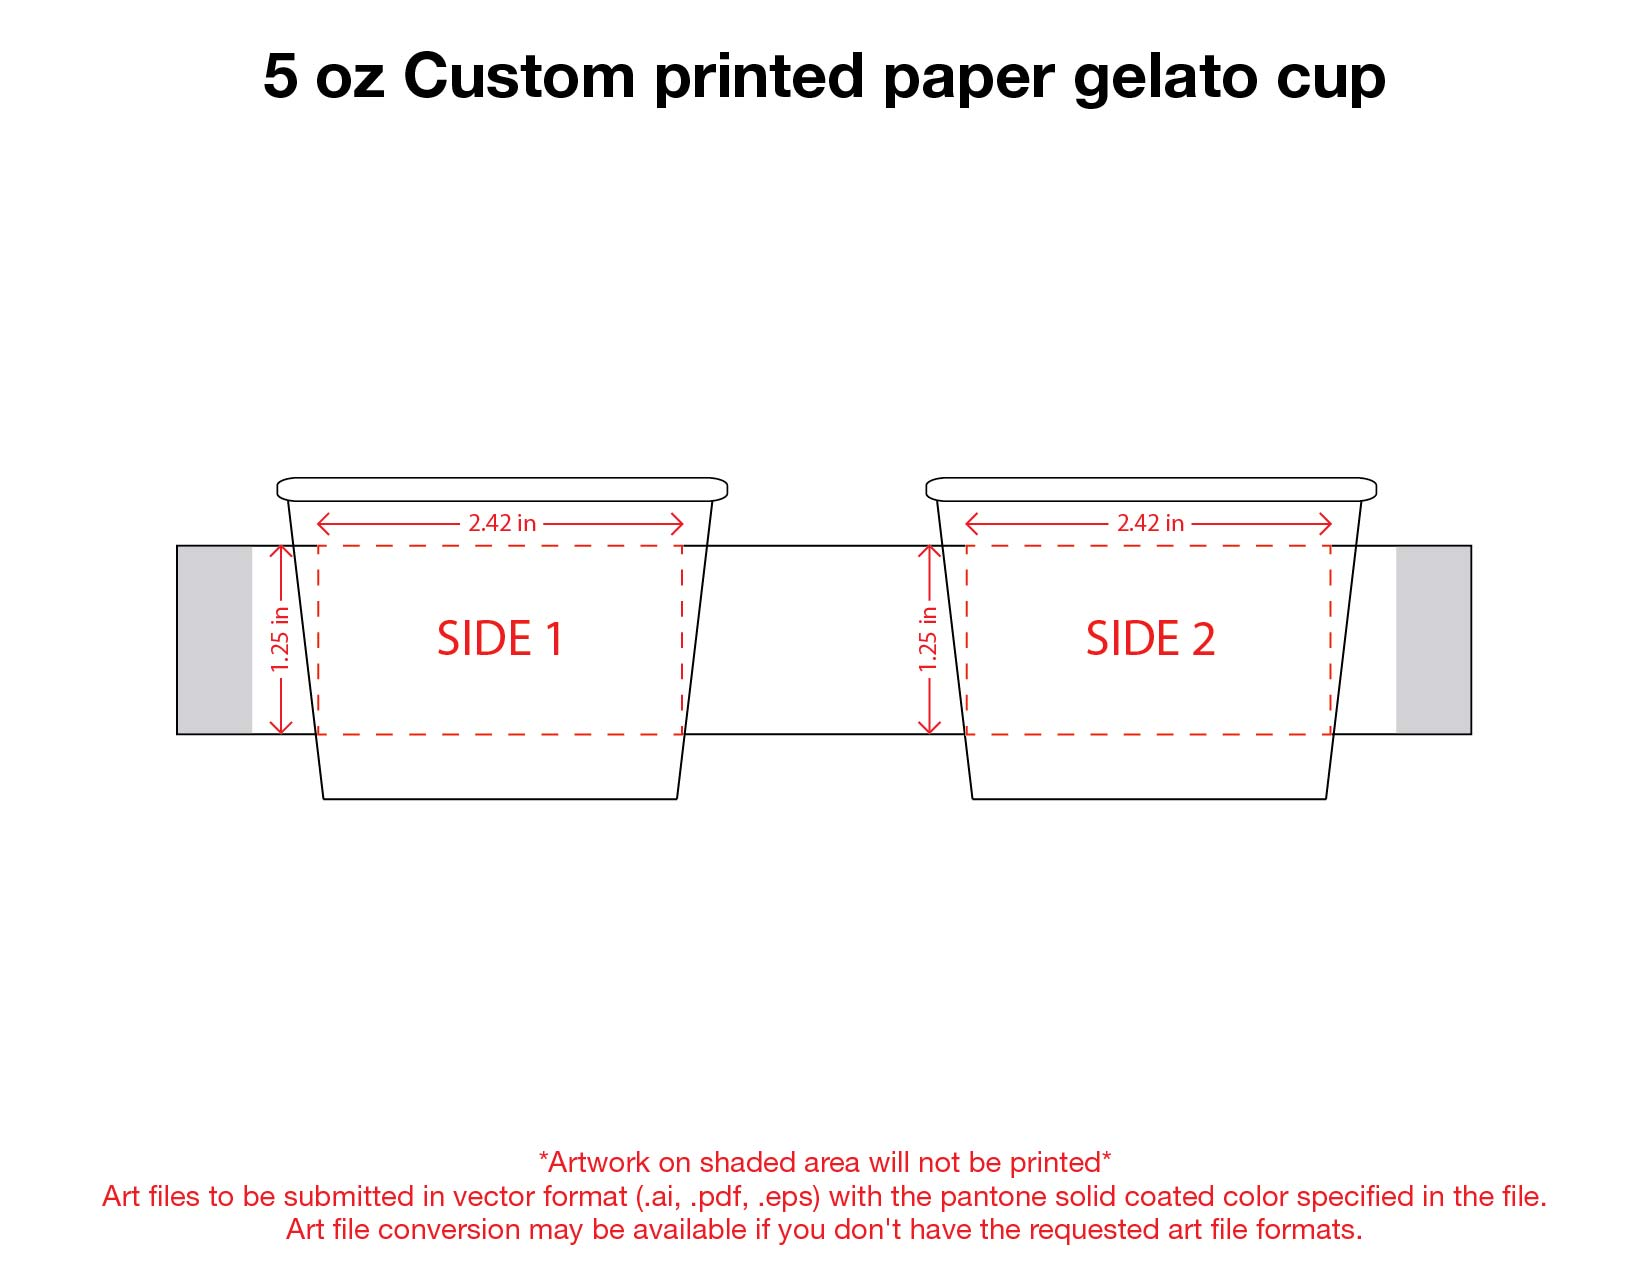 5 oz. Custom Printed Recyclable Gelato Paper